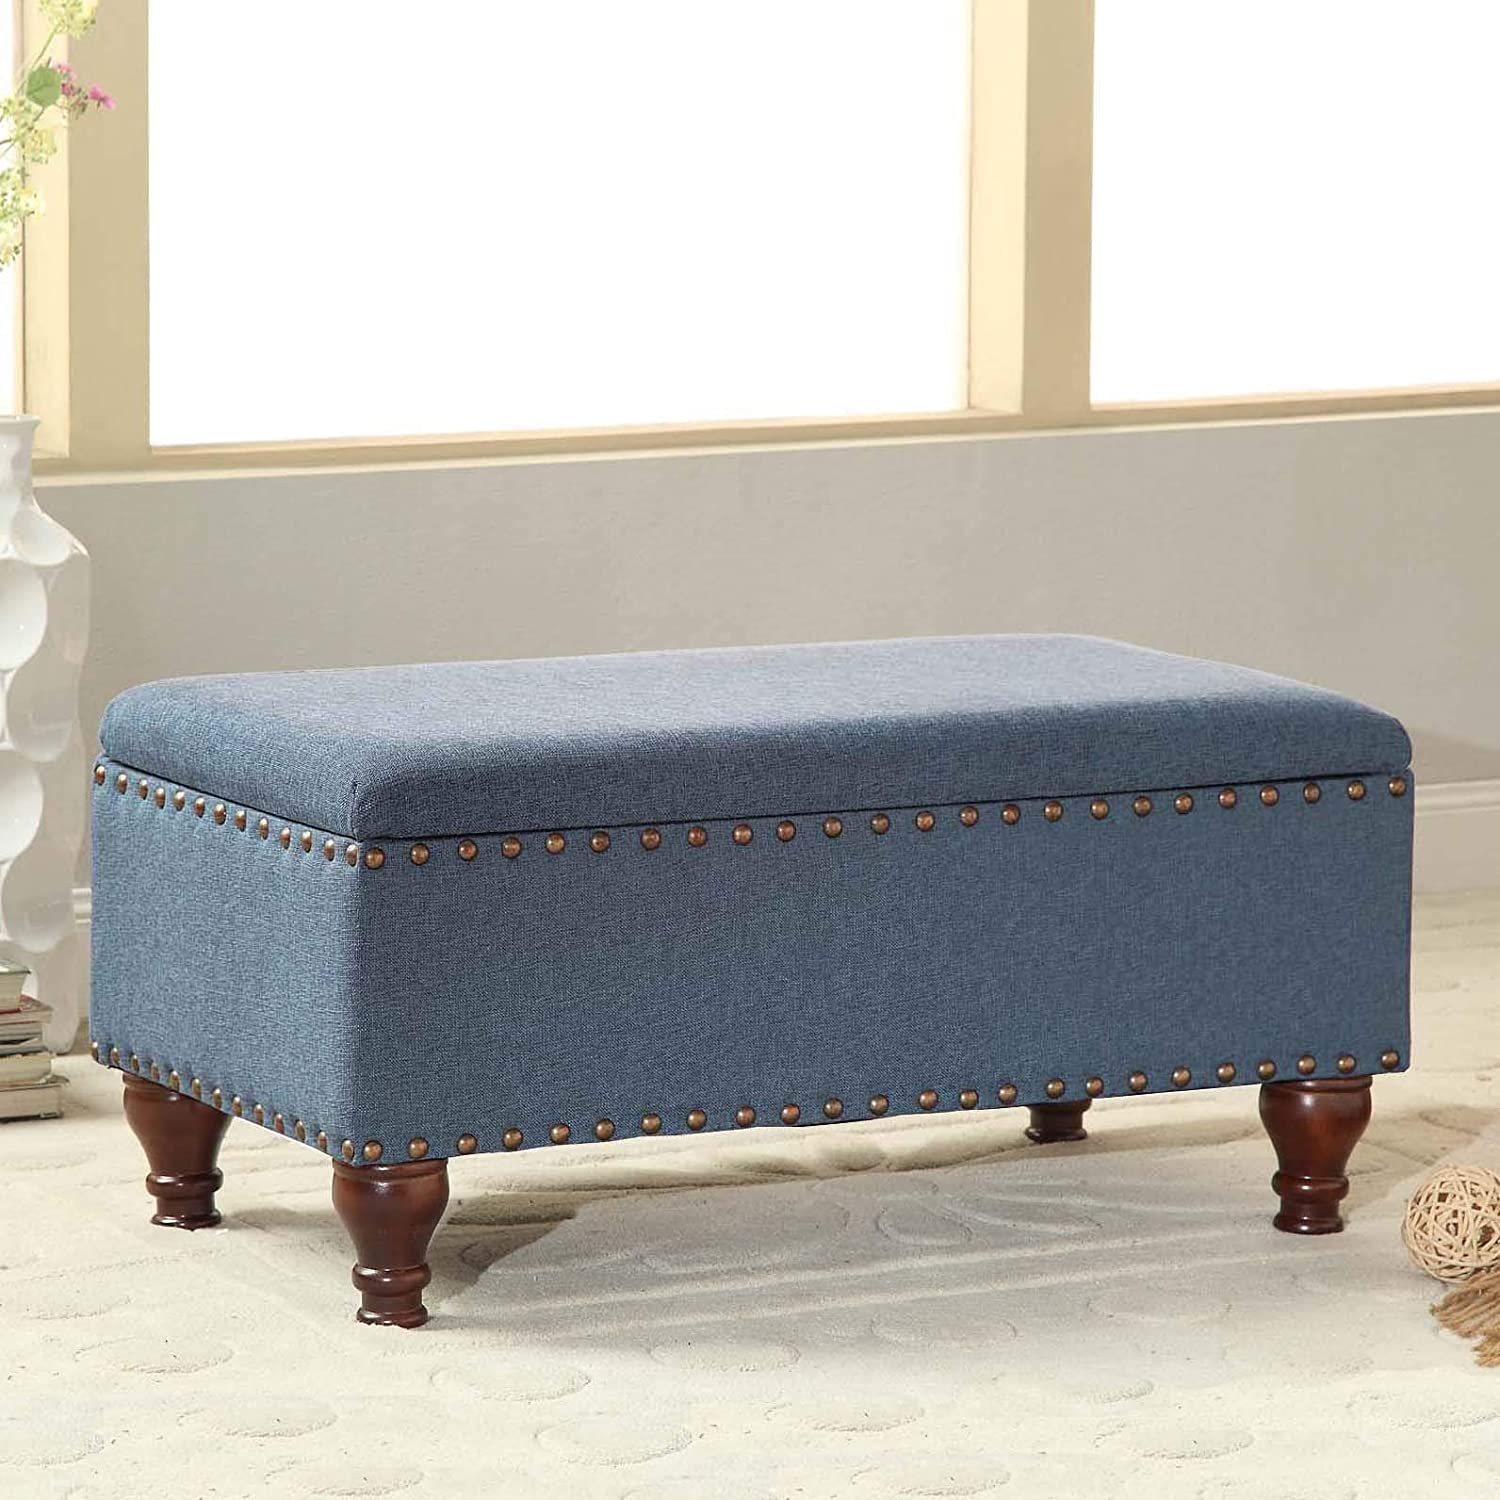 HomePop Linen Storage Bench with Nailhead Trim and Hinged Lid Blue